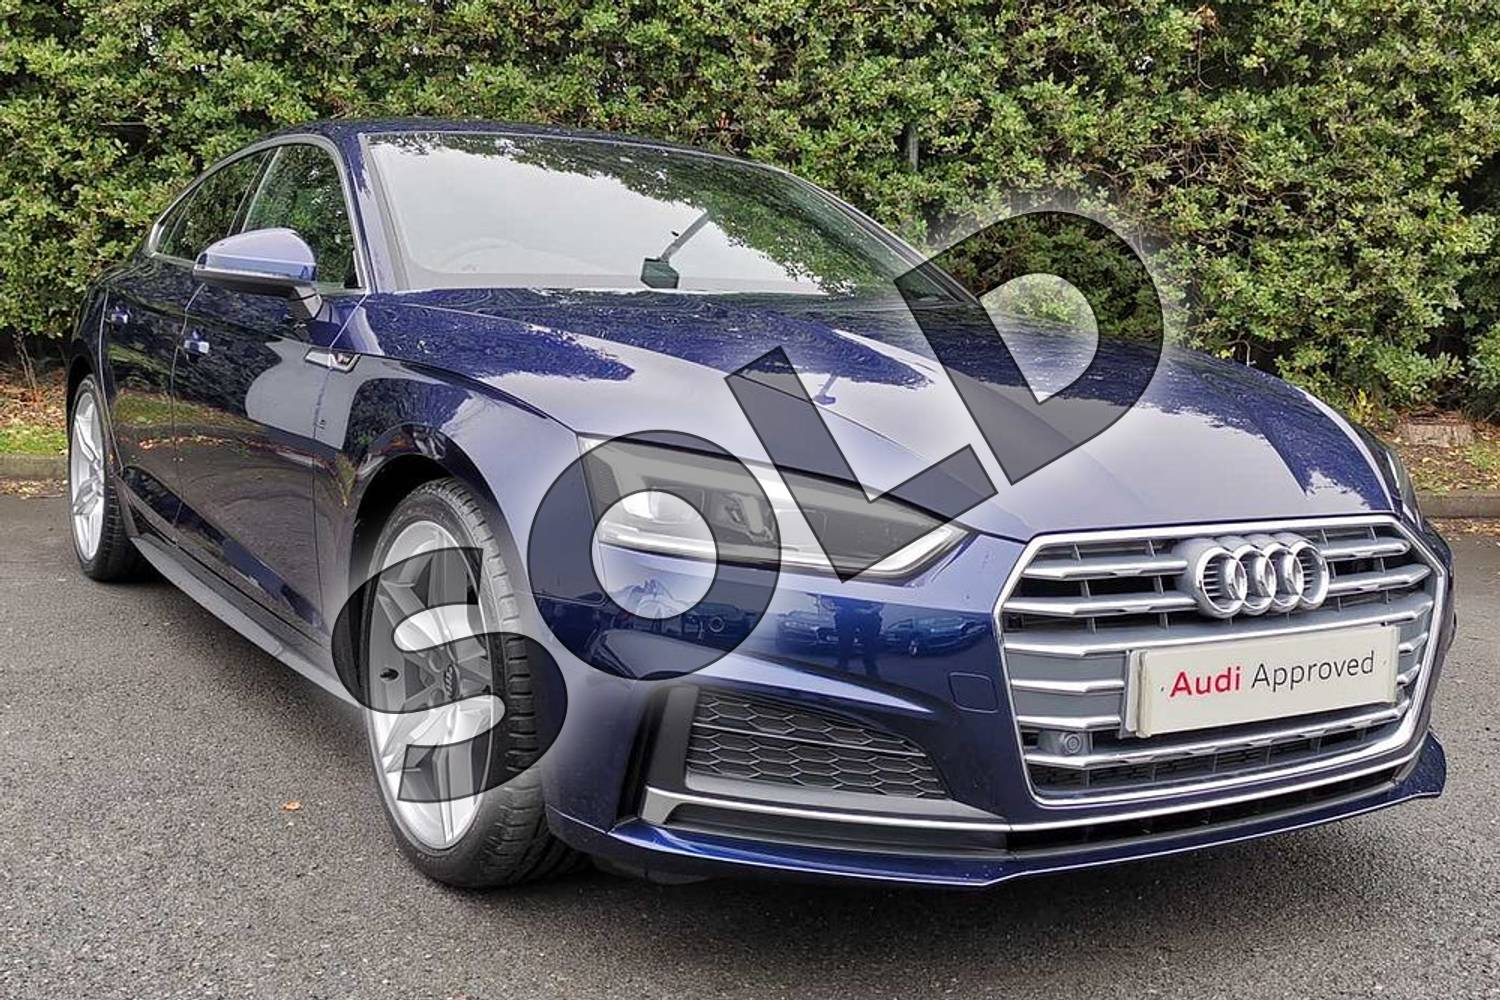 Audi A5 40 Tdi S Line 5dr S Tronic For Sale At Worcester Audi Ref 024 U461755